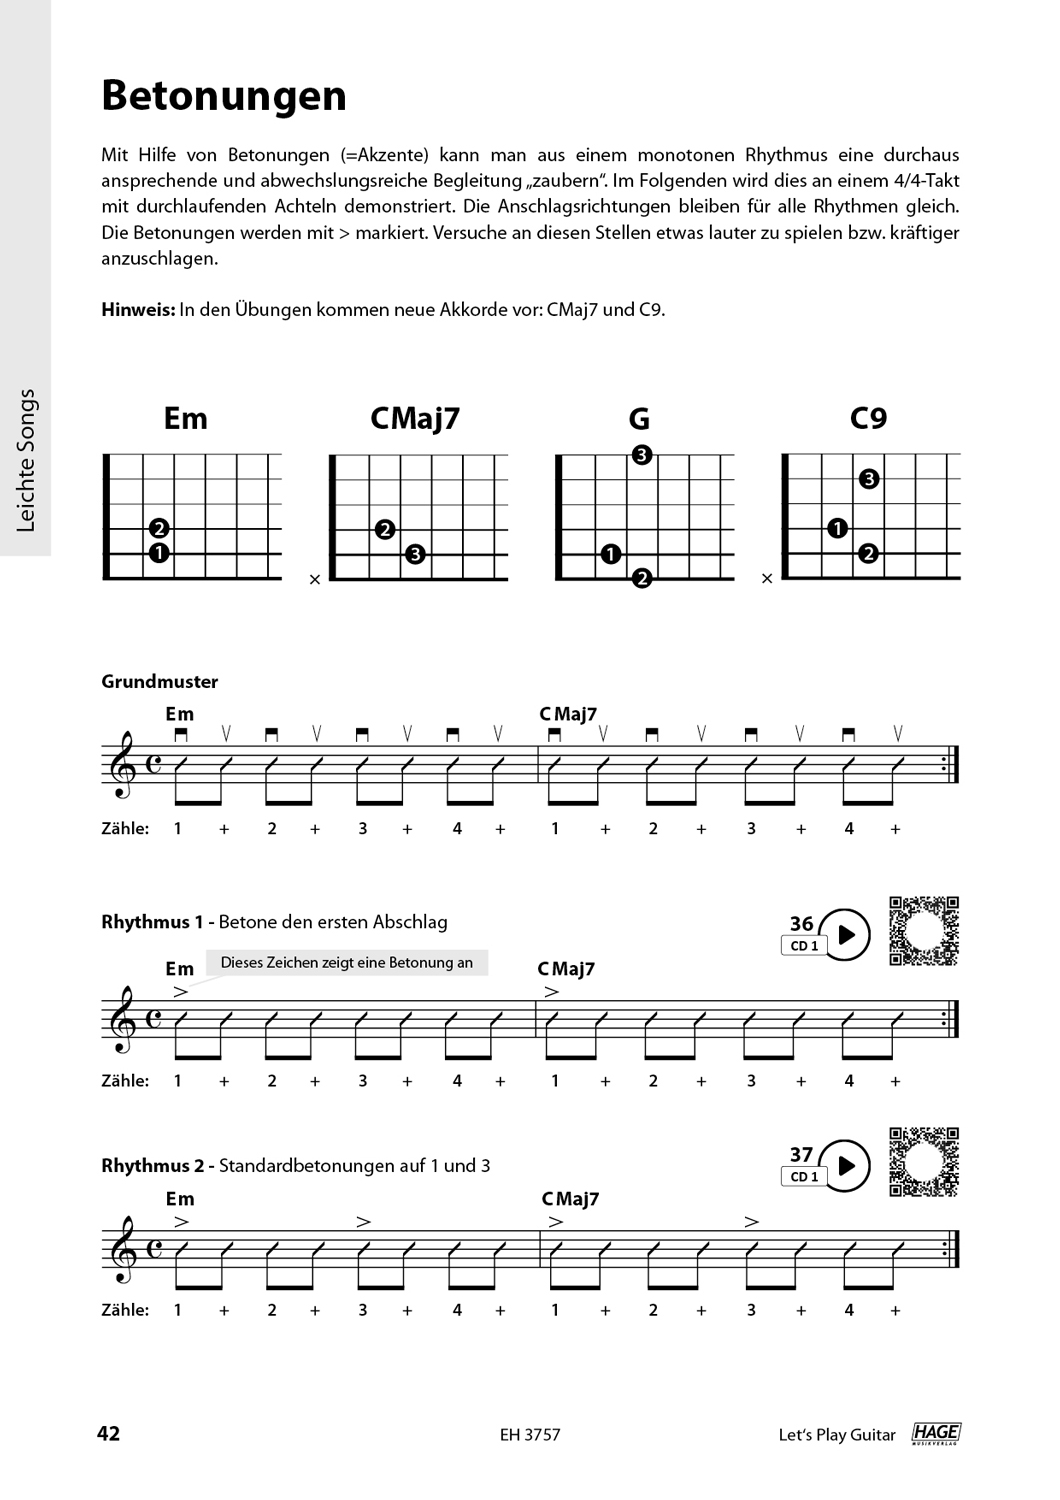 Let's Play Guitar Volume 1 (with 2 CDs and QR Codes) Pages 9